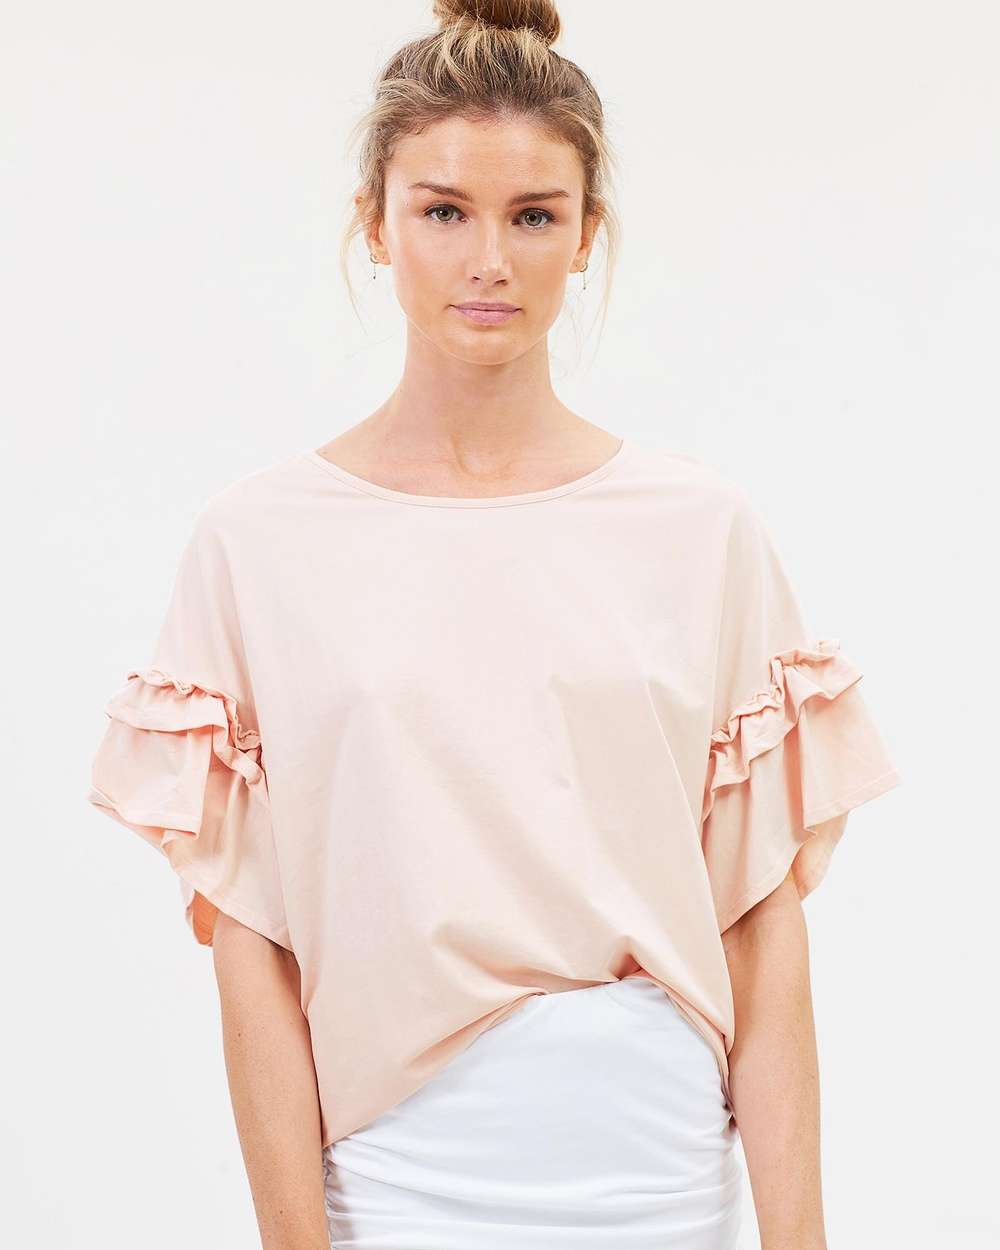 Lincoln St The Frill Cuff Tee Tops Smoke Pink The Frill Cuff Tee